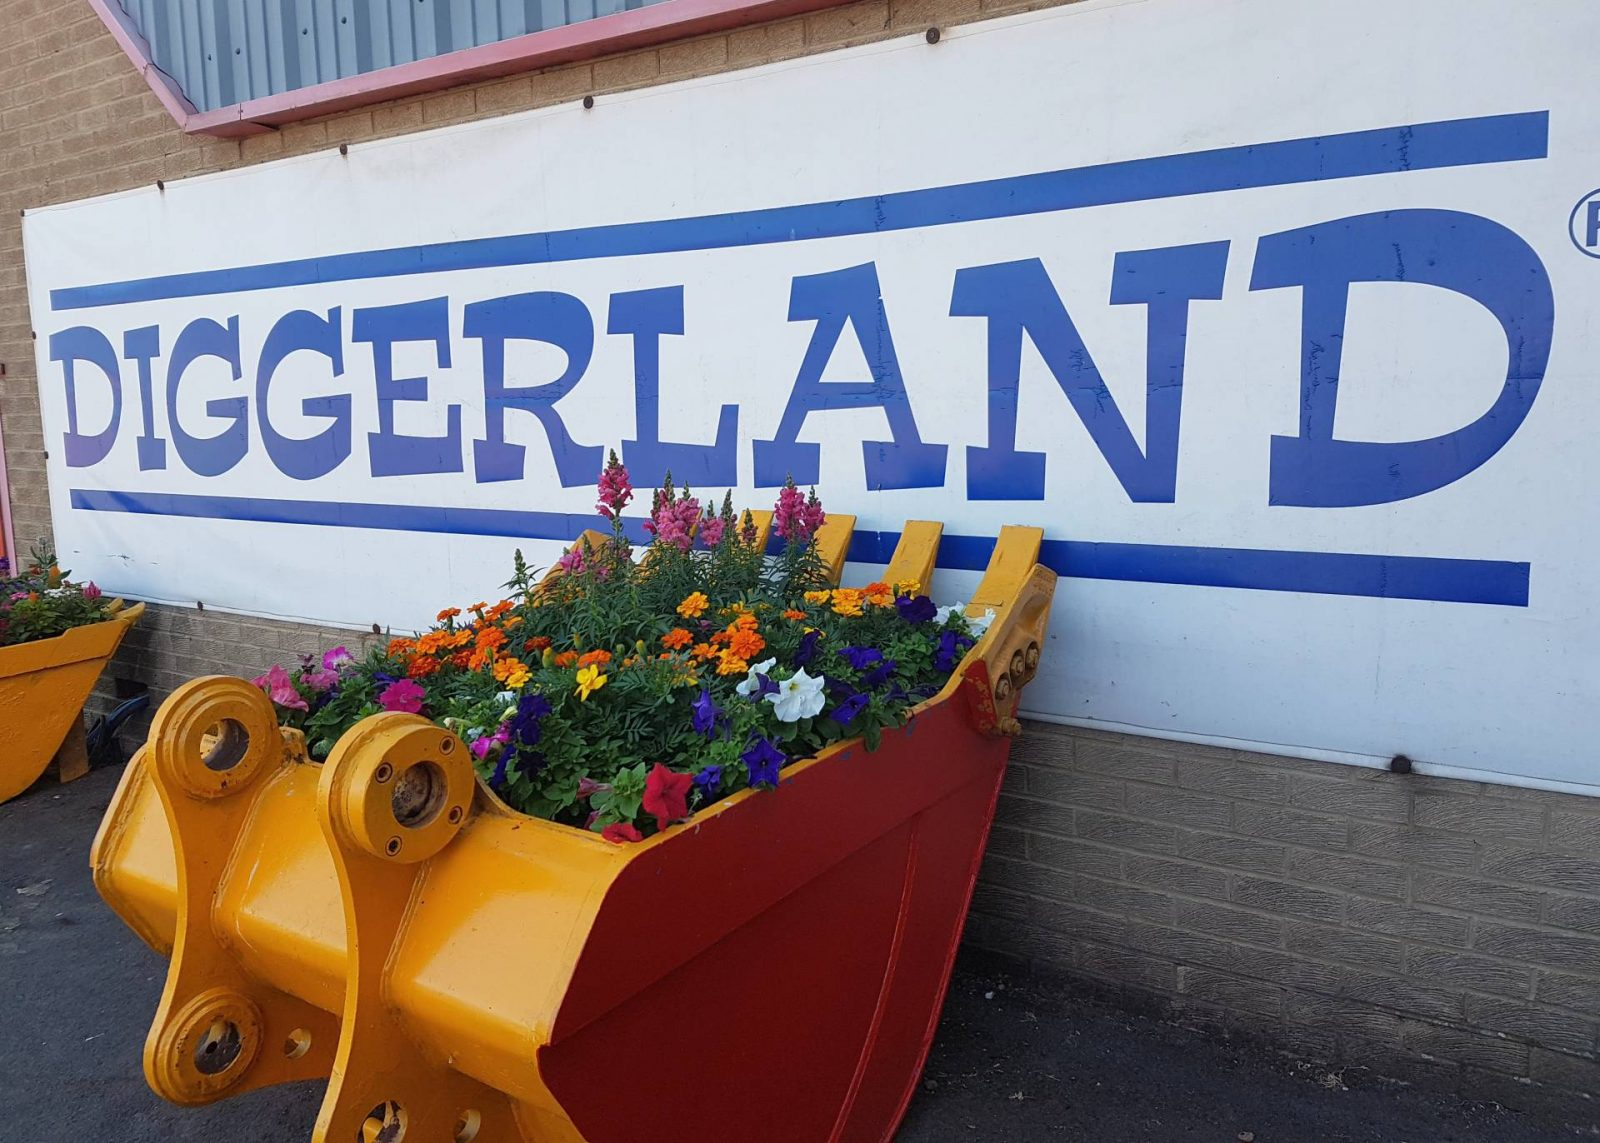 A day at Diggerland, Durham